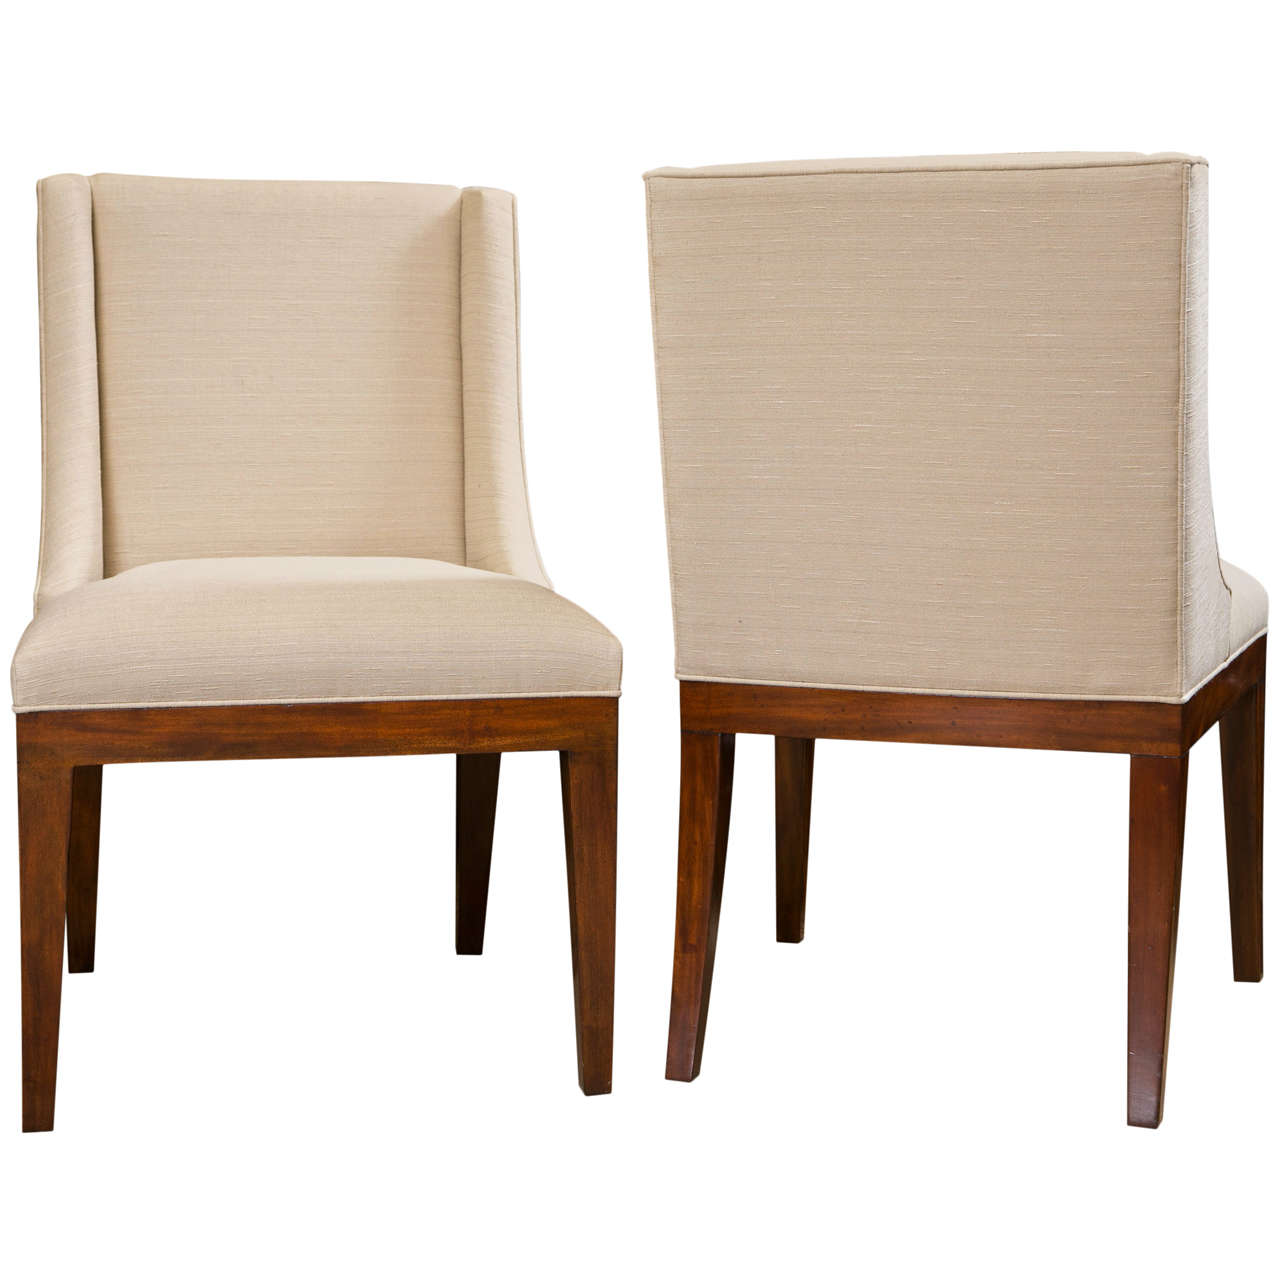 Set of 6 classic modern upholstered dining chairs at 1stdibs for Dining room accent chairs